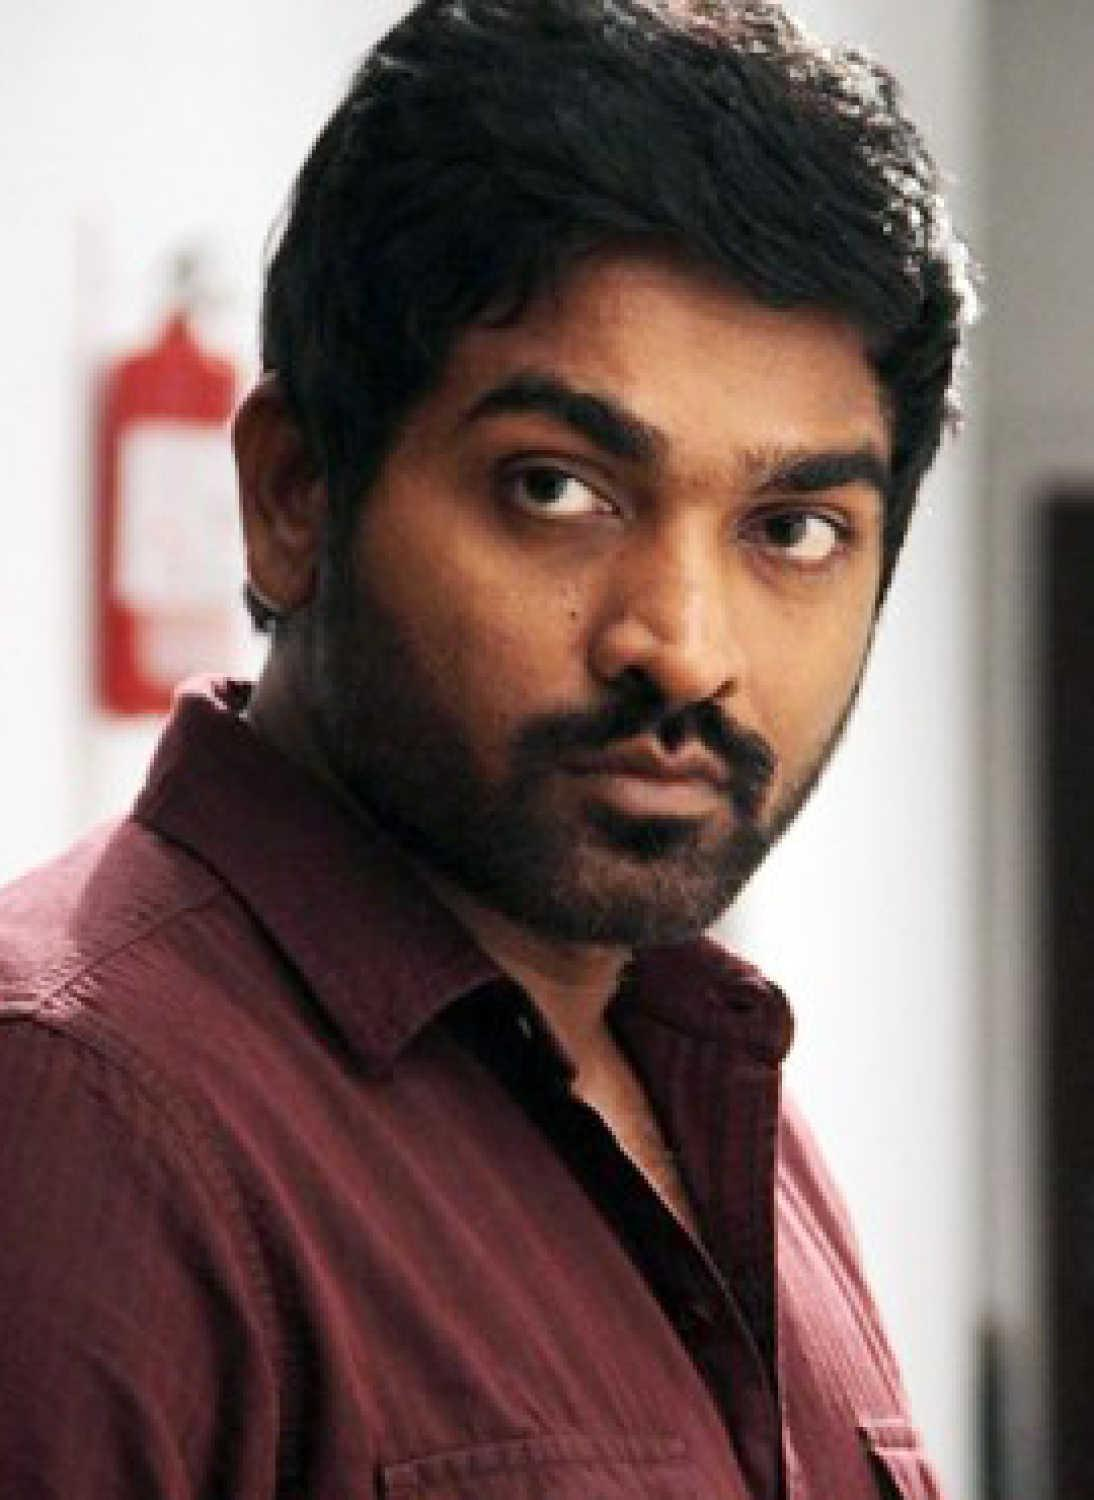 Vijay Sethupathi Wallpapers Posted By Ethan Mercado You can download any of these images to use as your android mobile wallpaper, iphone wallpaper or ipad/tablet wallpaper, in hd quality. vijay sethupathi wallpapers posted by